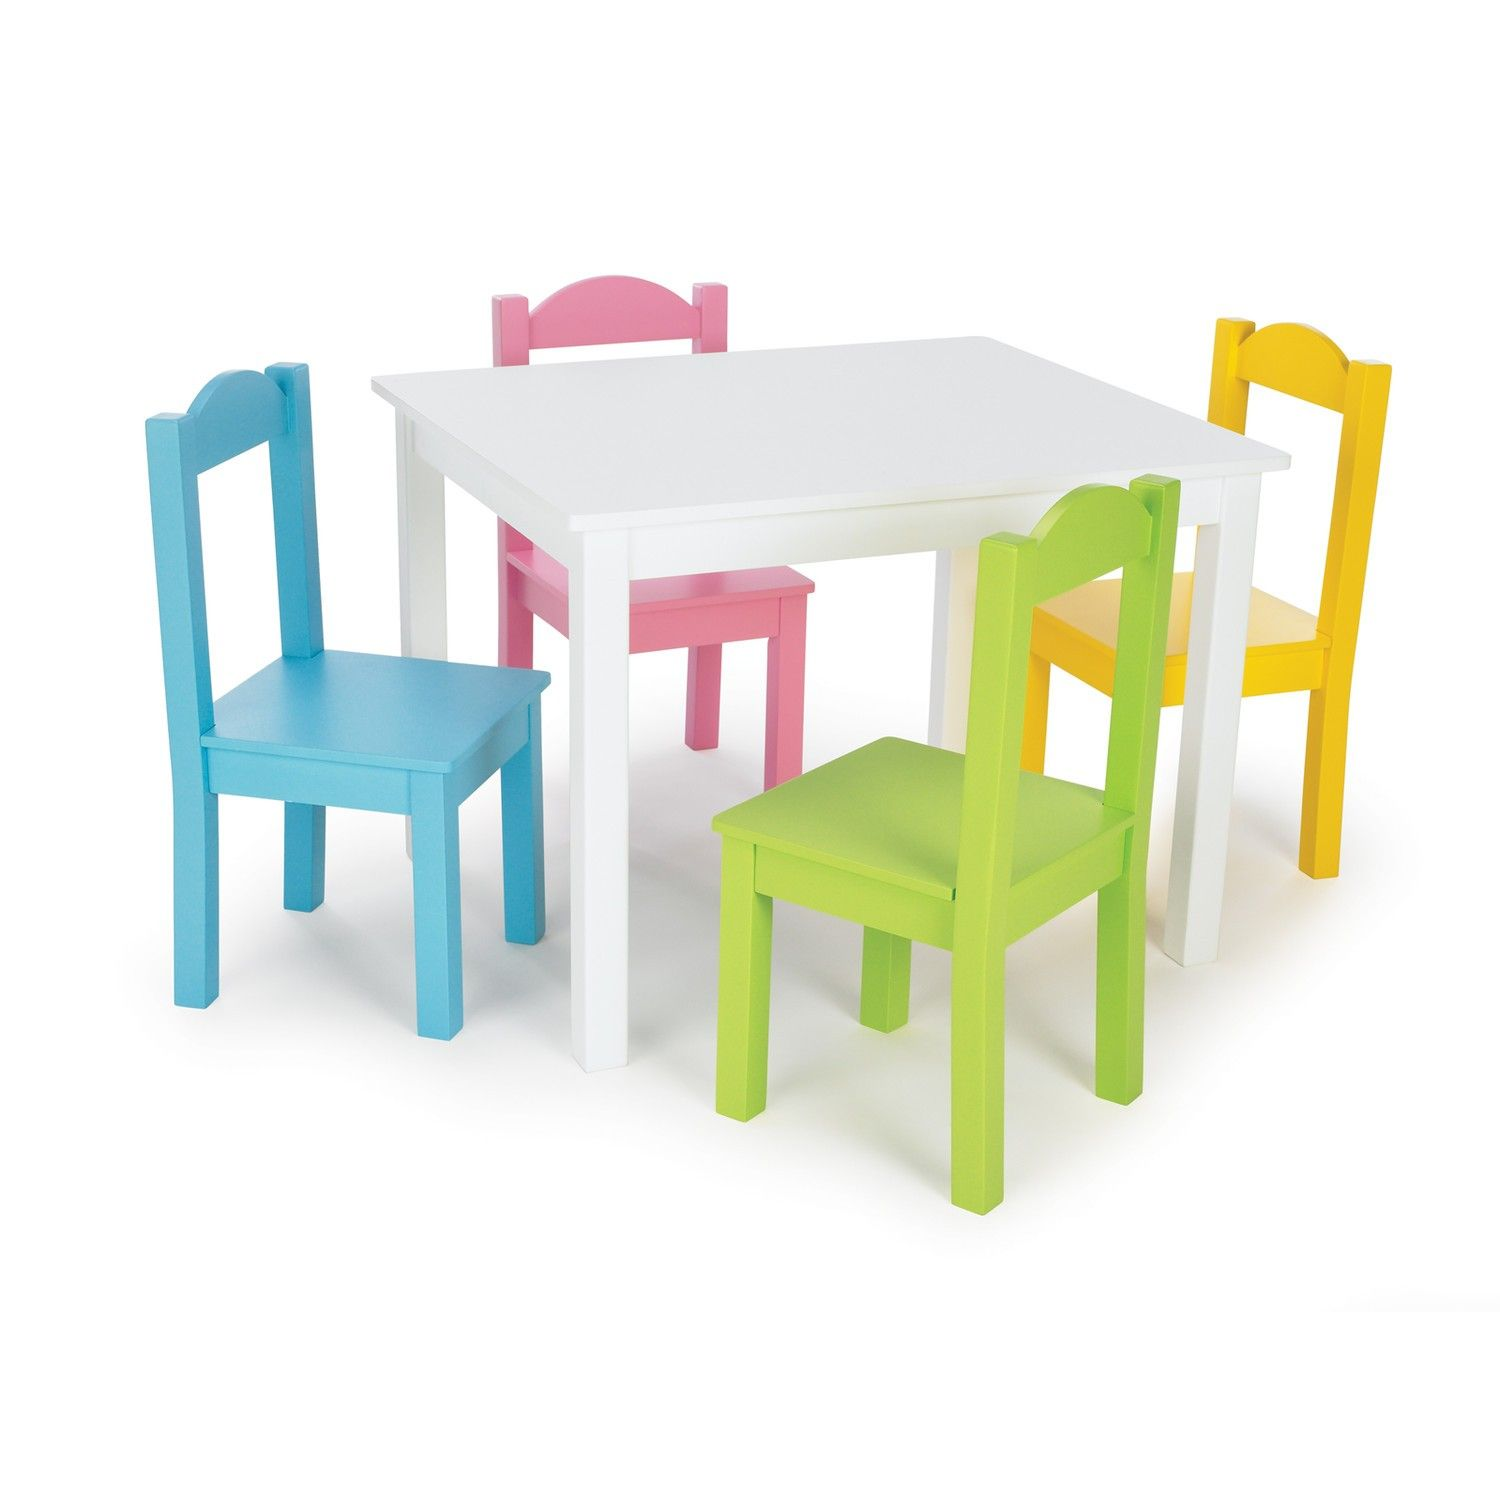 Awesome Wooden Table And Chairs For Kids Furniture Kids Room Interior Design Ideas Philsoteloinfo